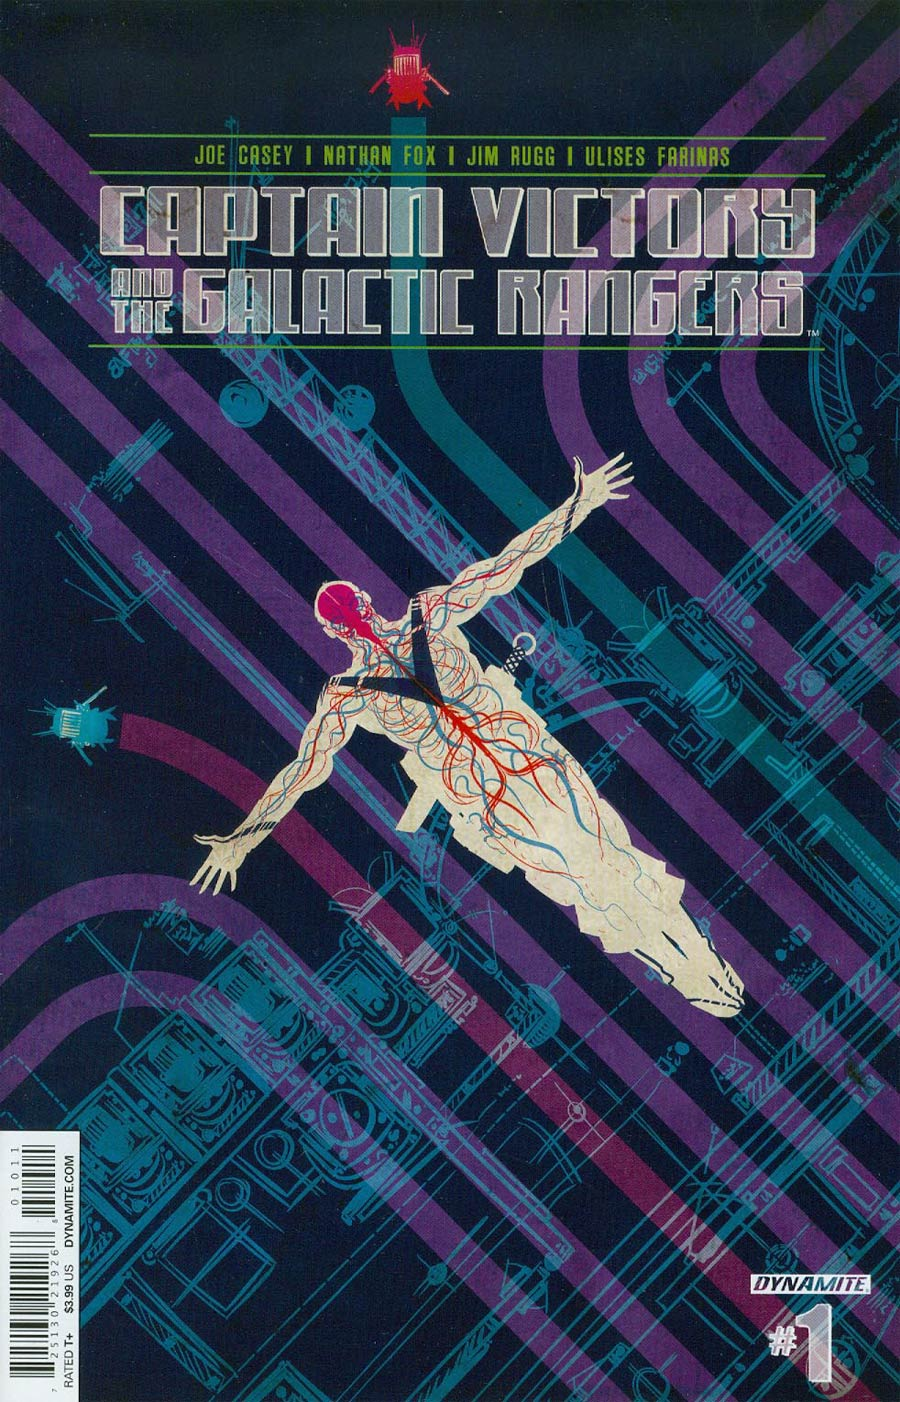 Captain Victory And The Galactic Rangers Vol 3 #1 Cover A Regular Nathan Fox Cover